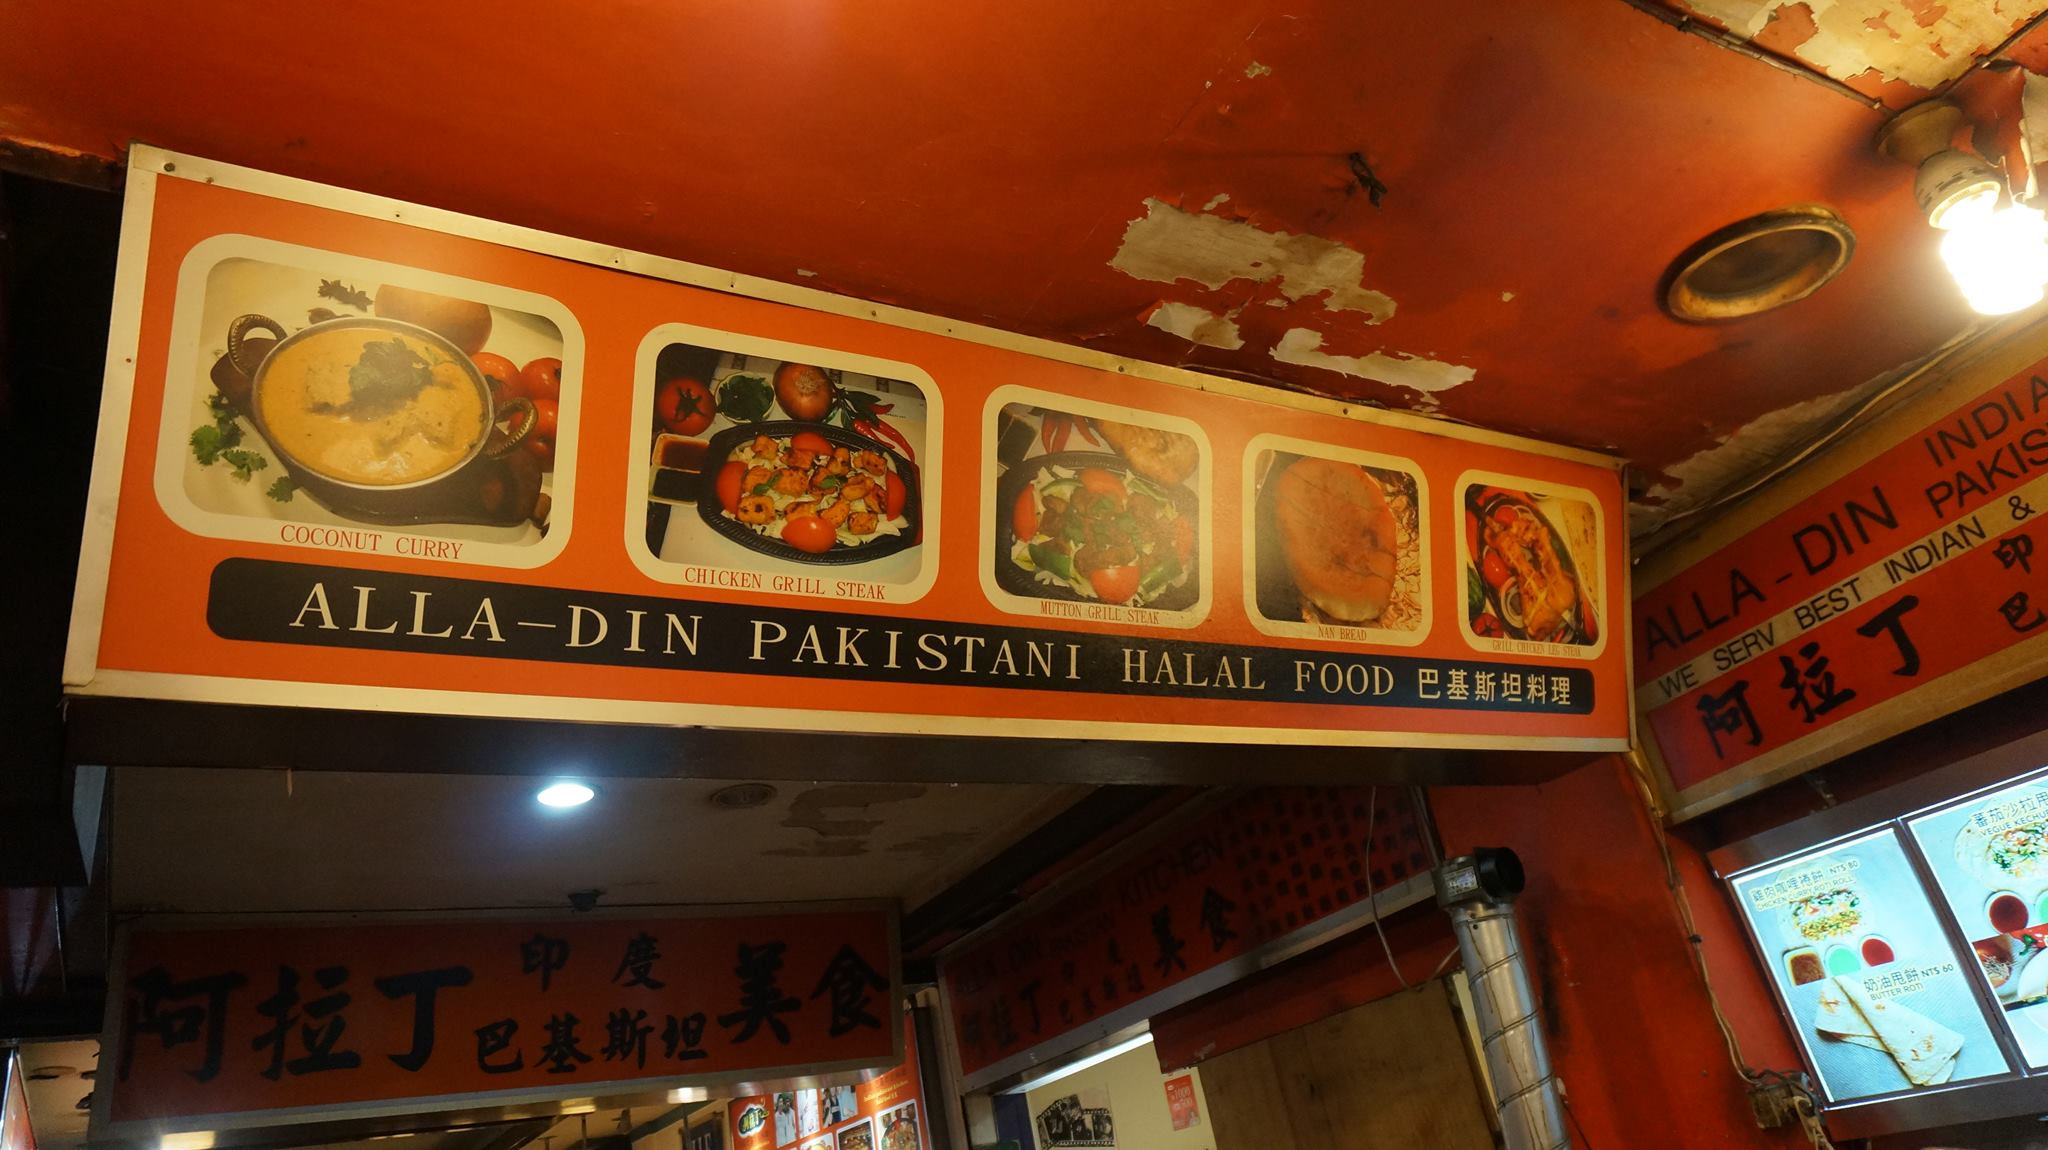 Alla-din Indian Pakistan Halal Food